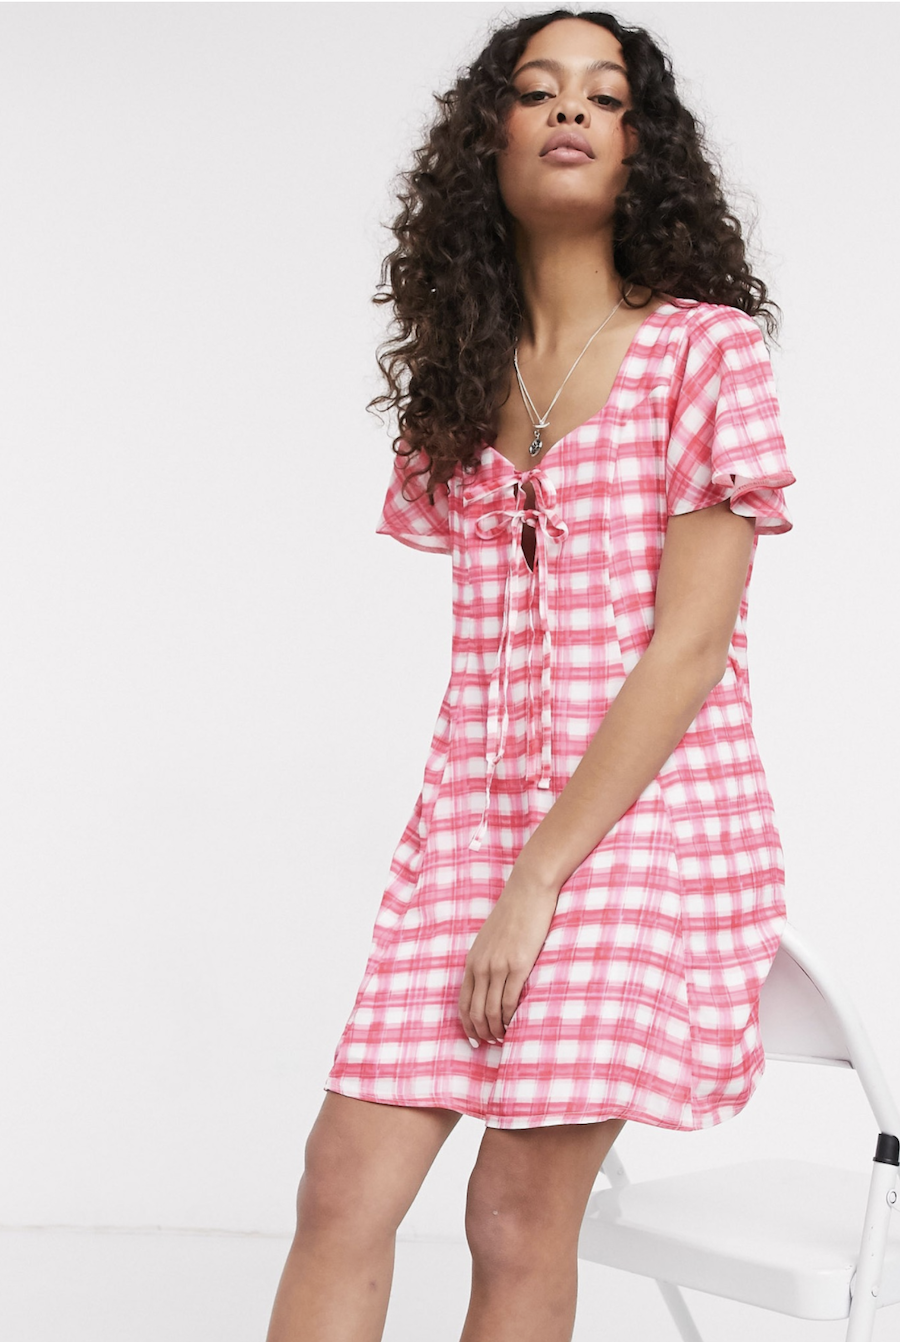 Wide dress with bow on the front and Another Reason's pink checkered design